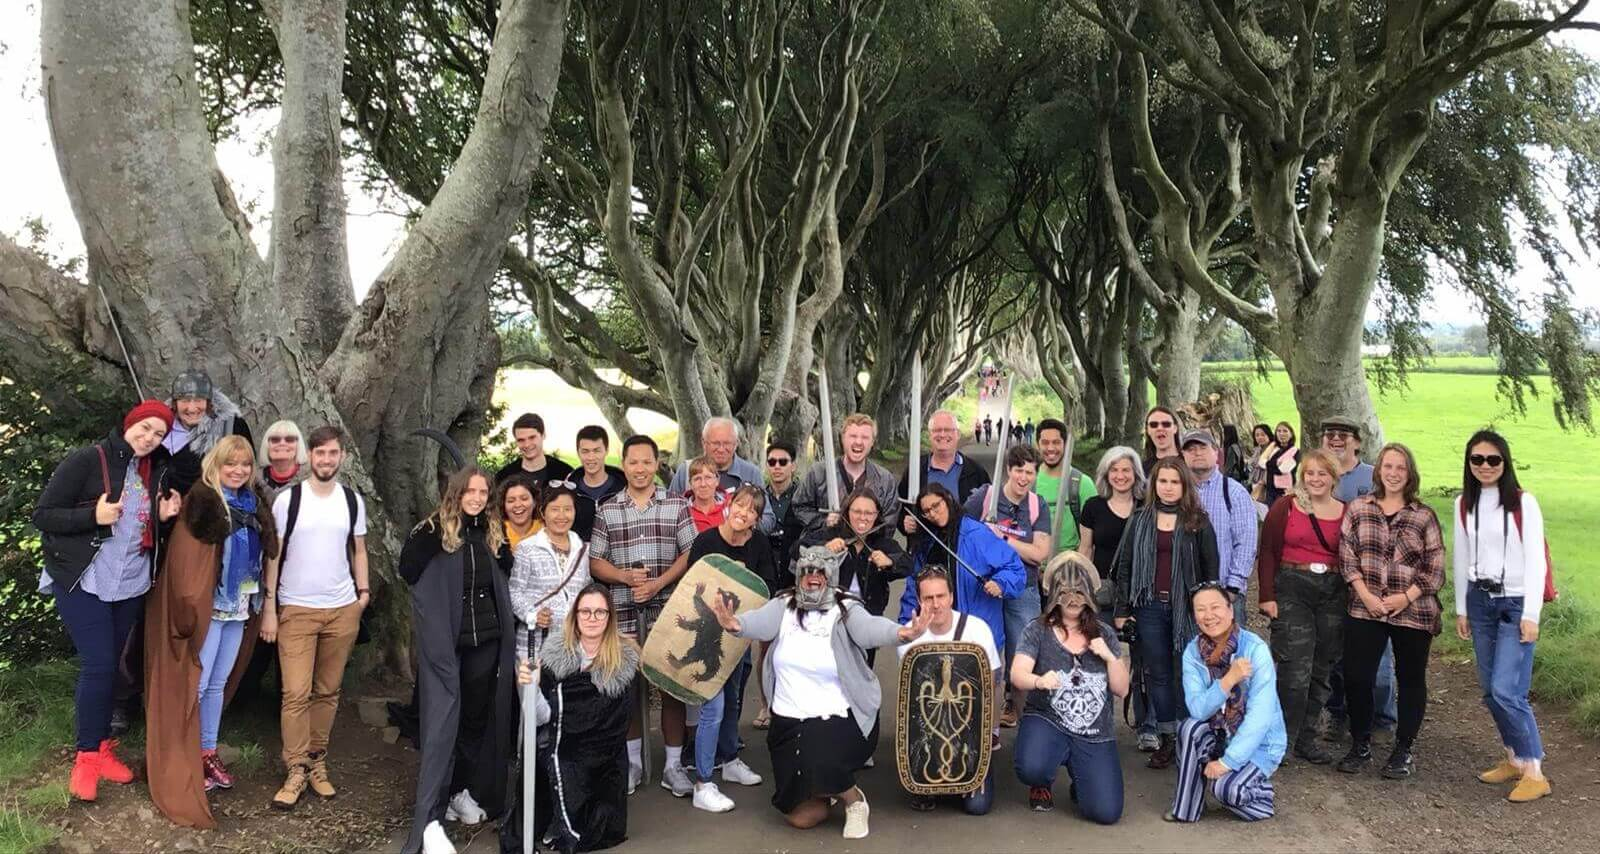 Game-of-thrones-tour-in-ireland